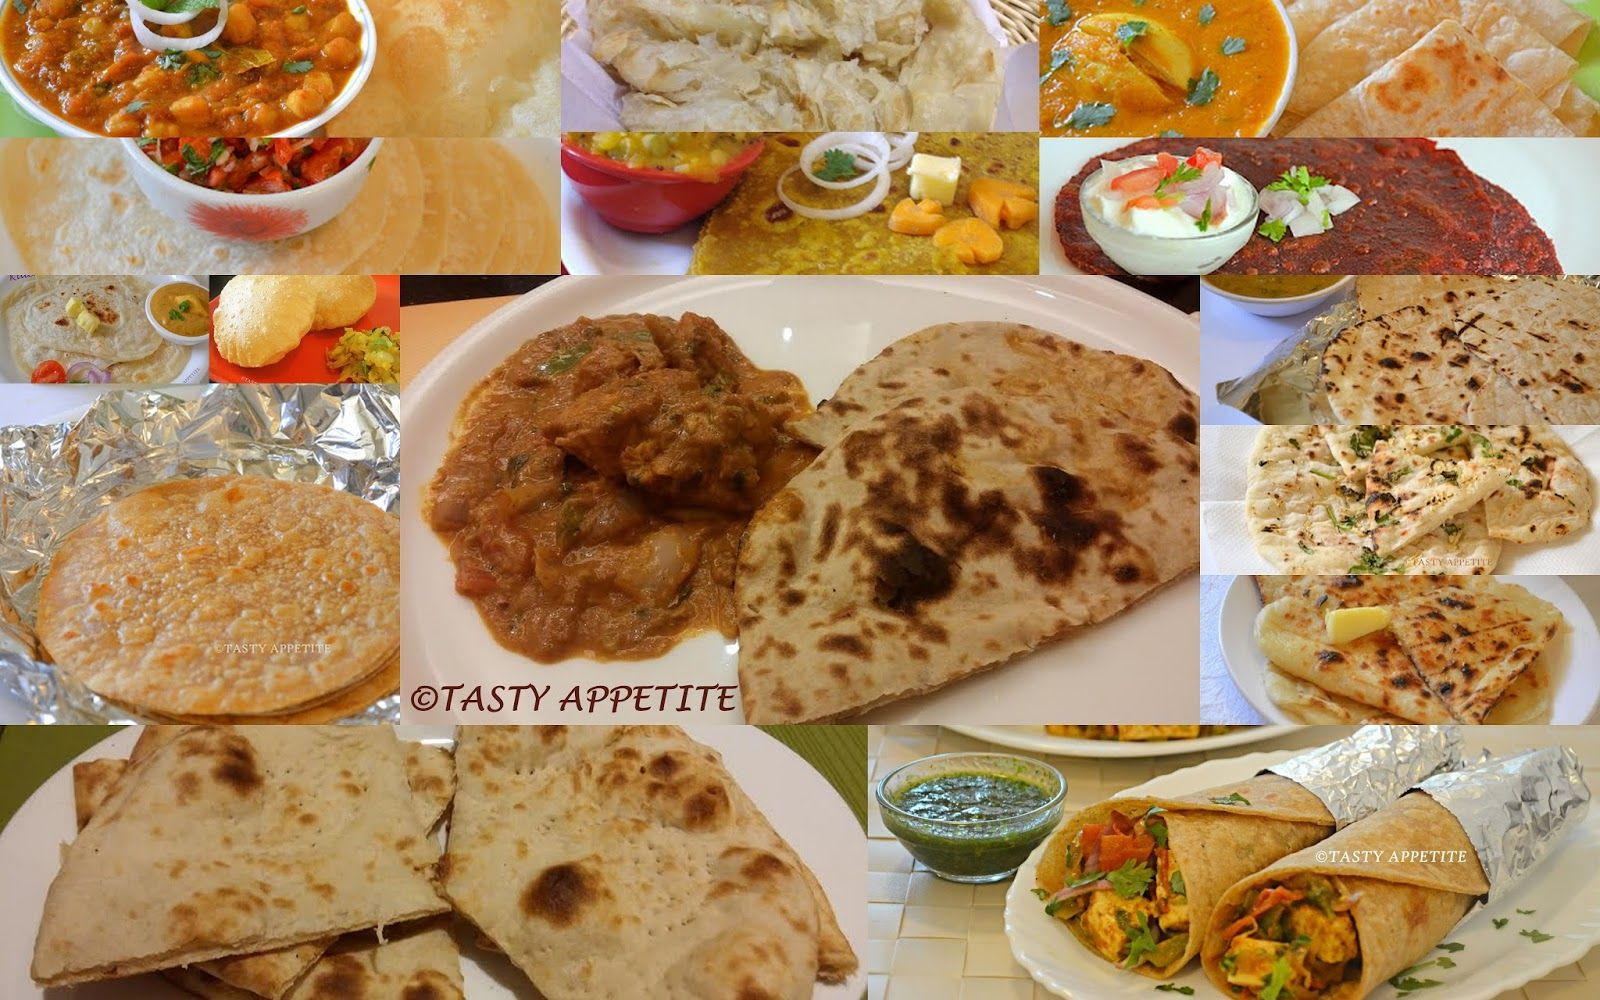 Tasty appetite roti recipes roti chapathi naan recipes tasty appetite roti recipes roti chapathi naan recipes quick indian bread forumfinder Gallery